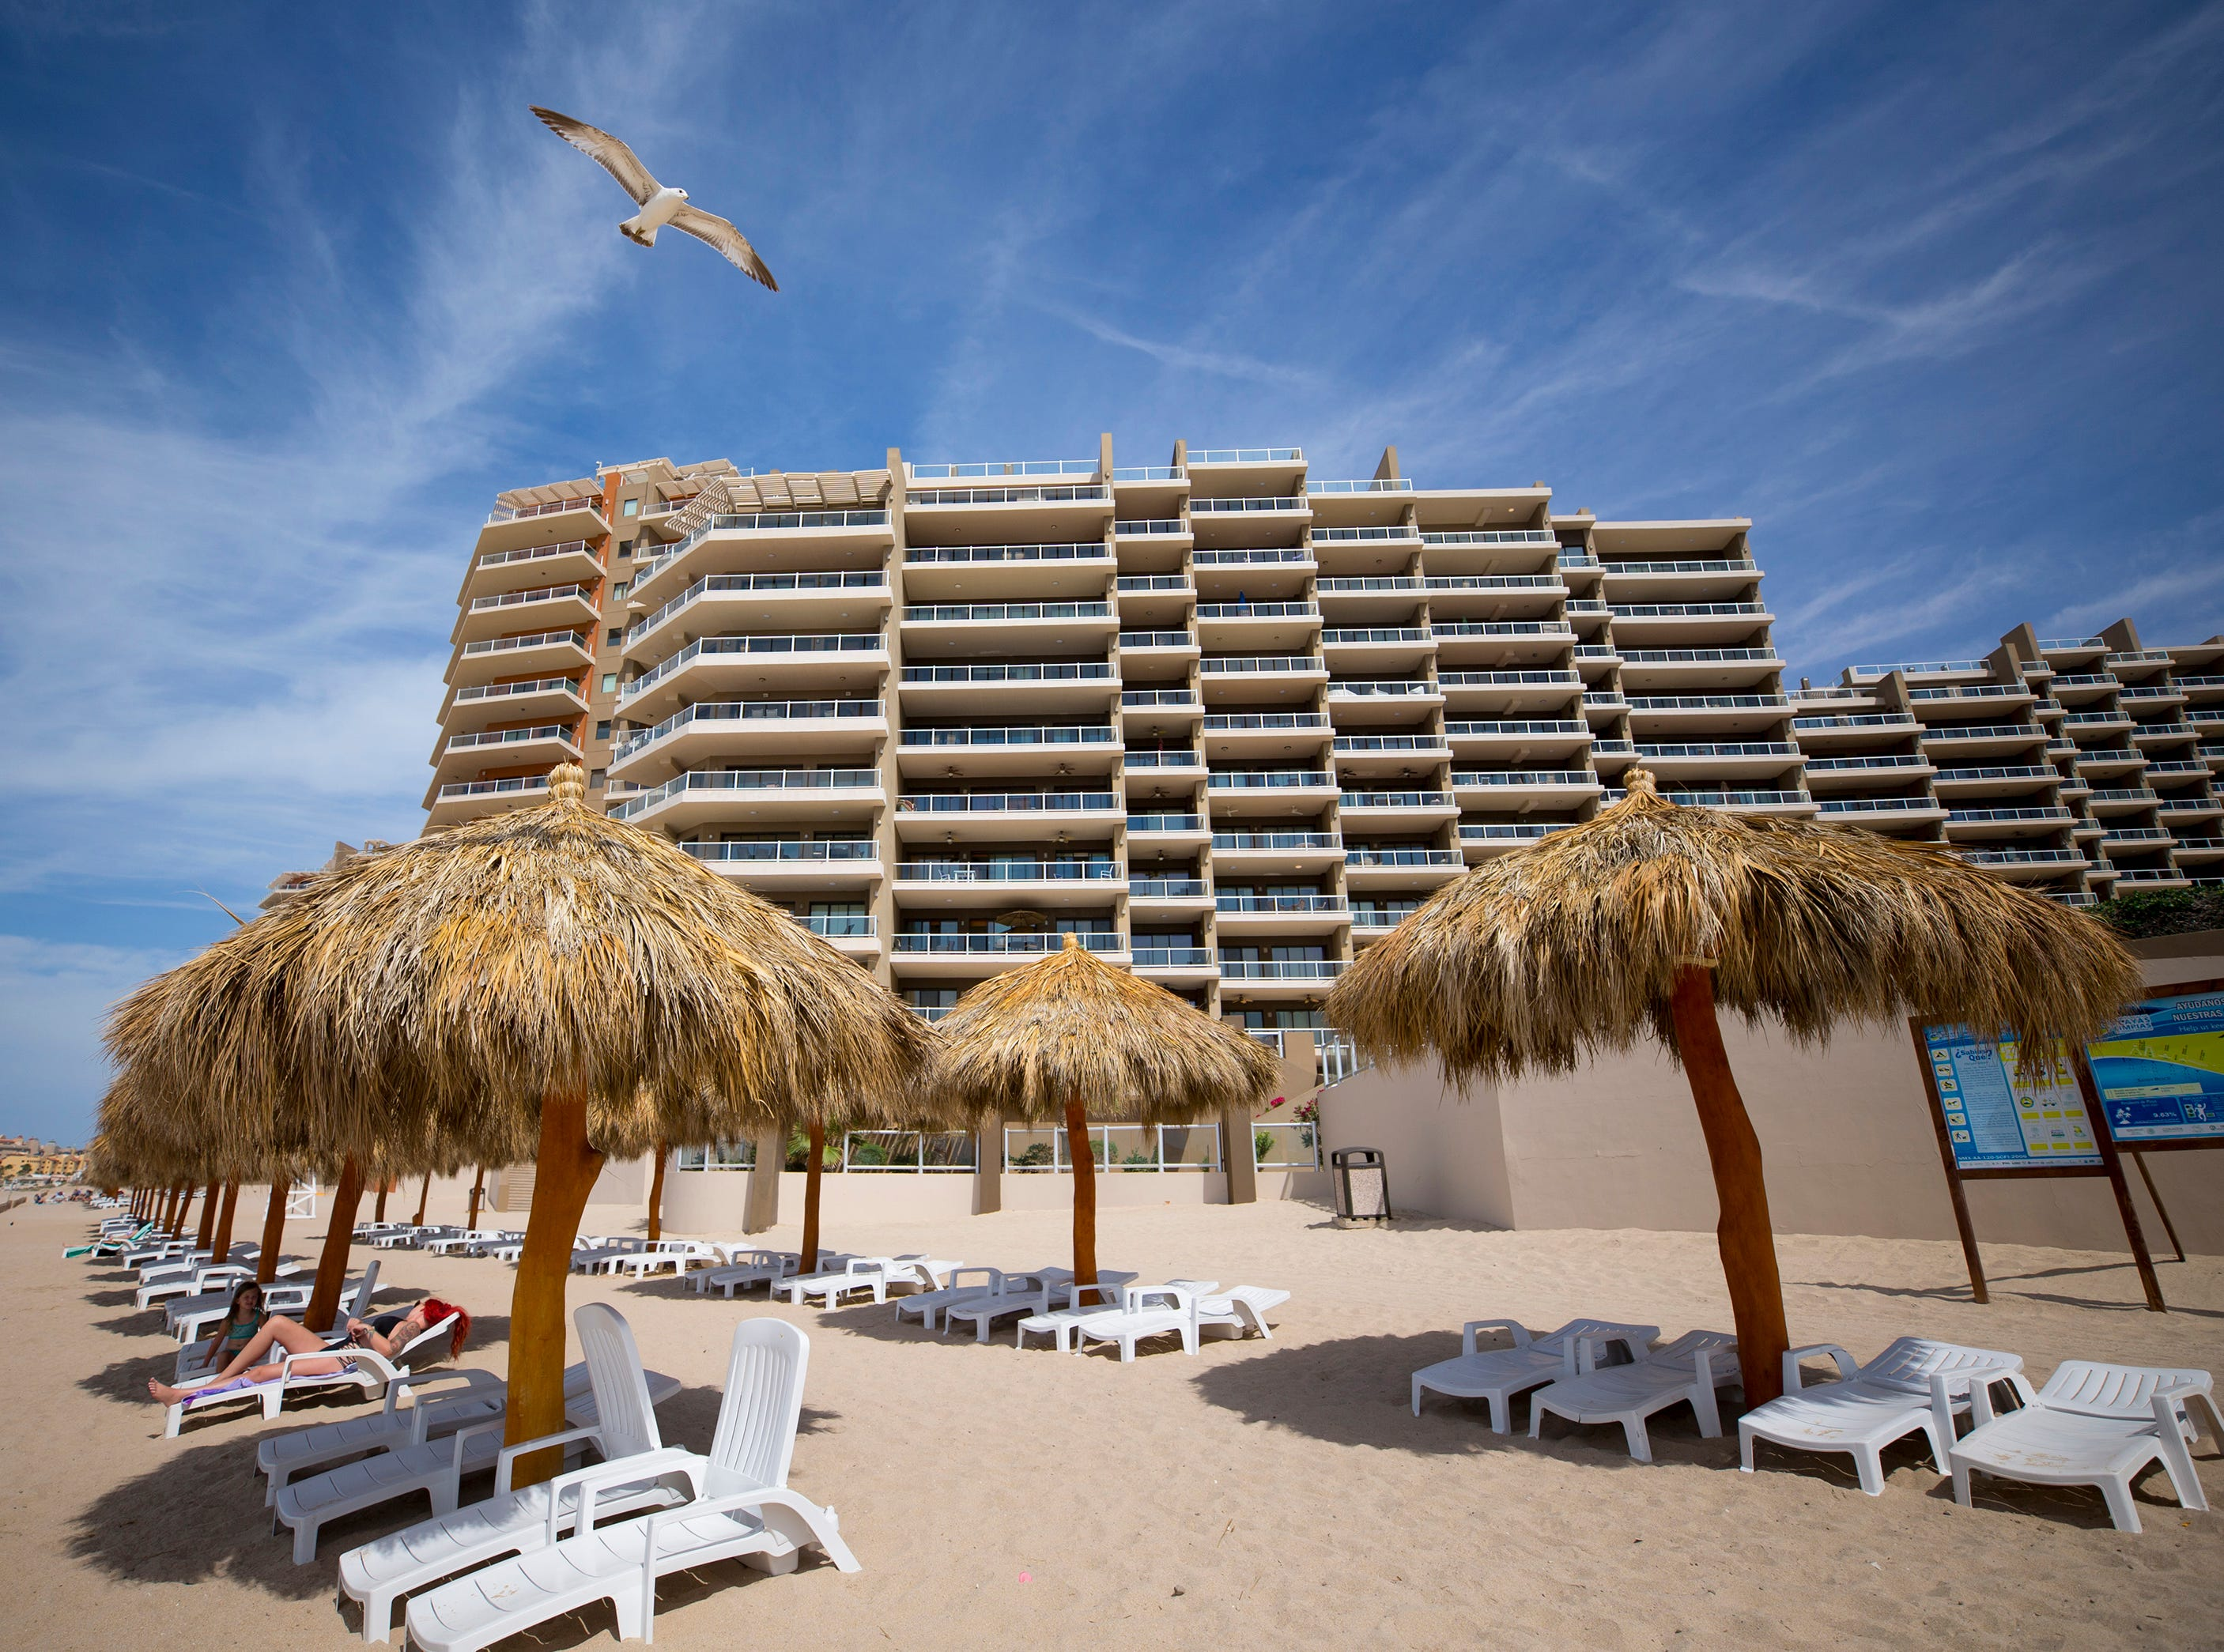 Las Palomas Beach and Golf Resort is ocean front property with views of the Sea of Cortez in Puerto Penasco, Mexico.